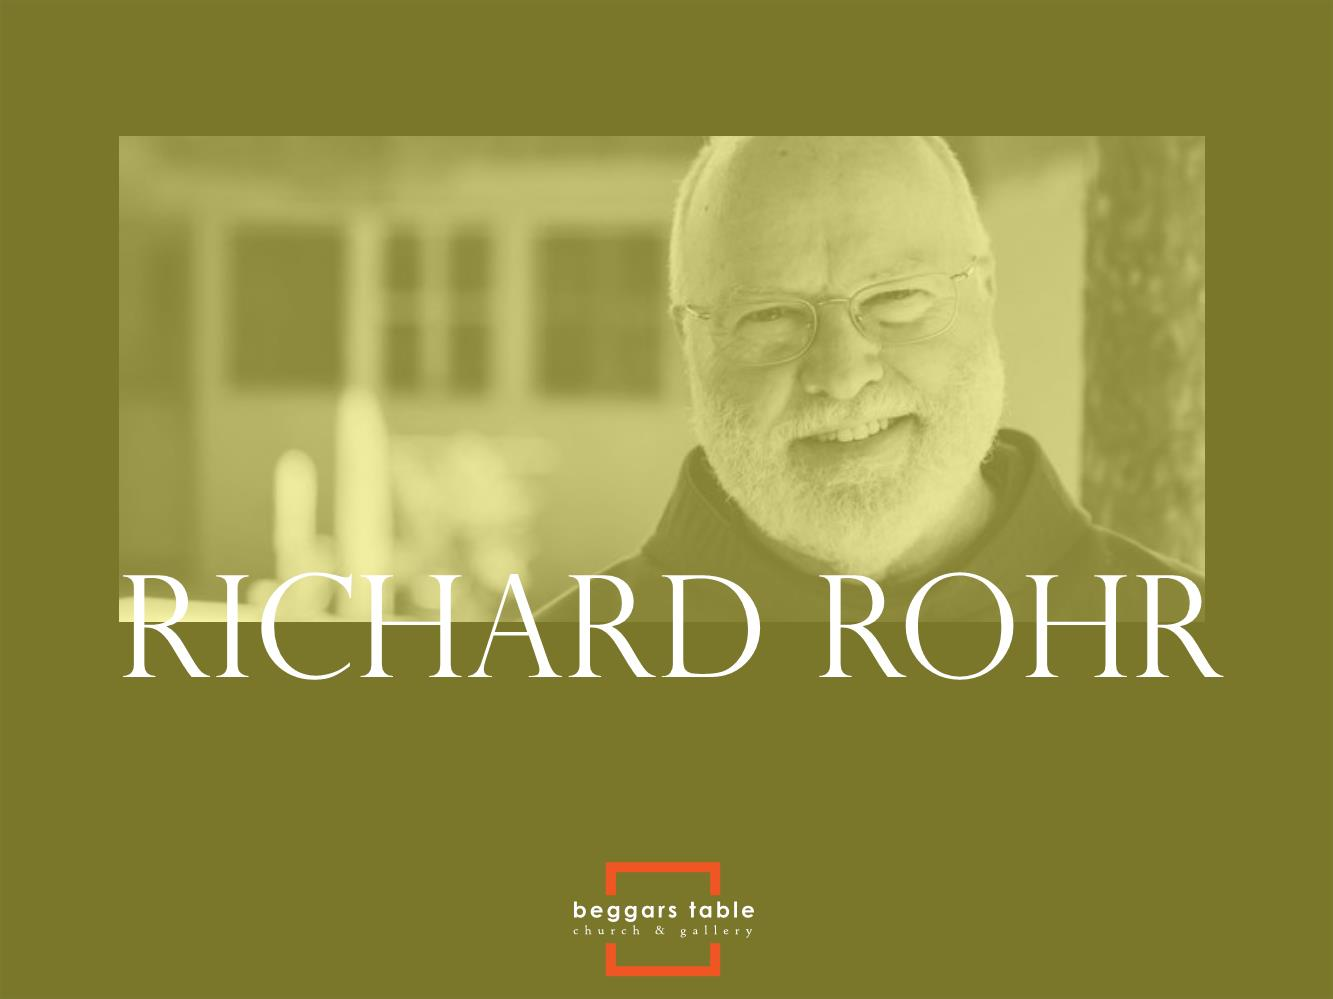 BT influence - Richard Rohr